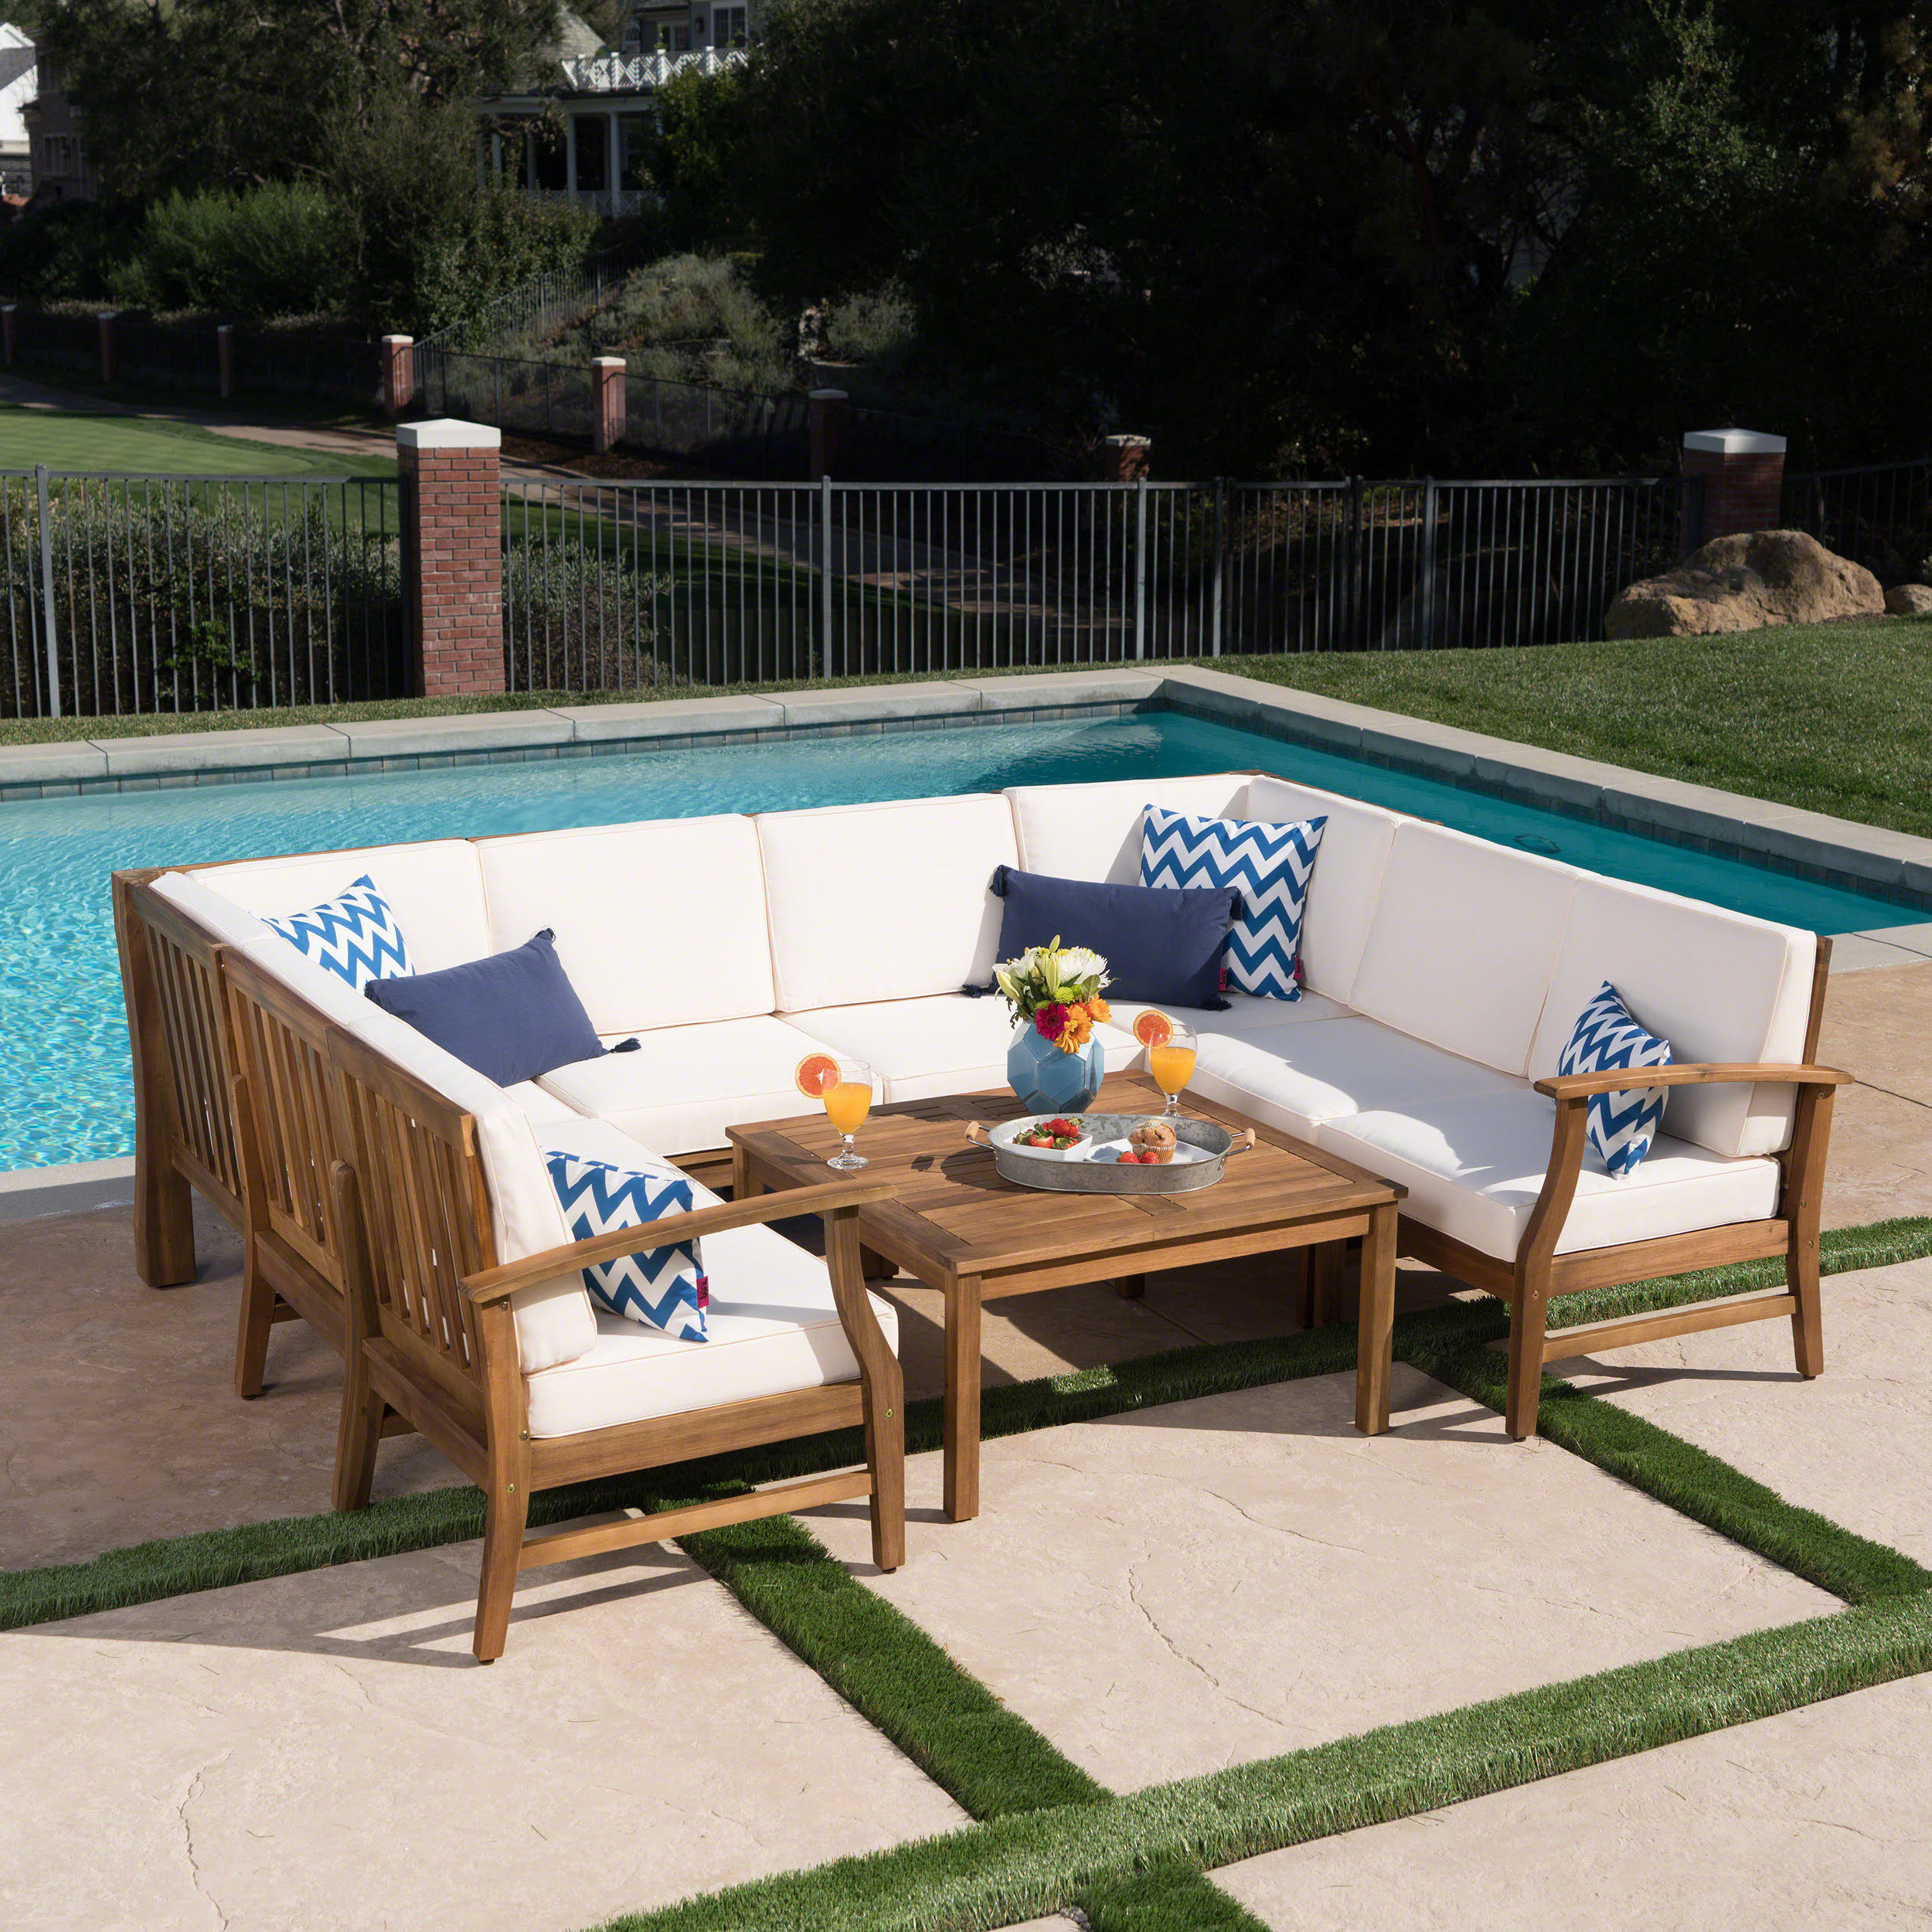 Fashionable Antonia Teak Patio Sectionals With Cushions Throughout Antonia 8 Piece Sectional Set With Cushions (View 9 of 25)